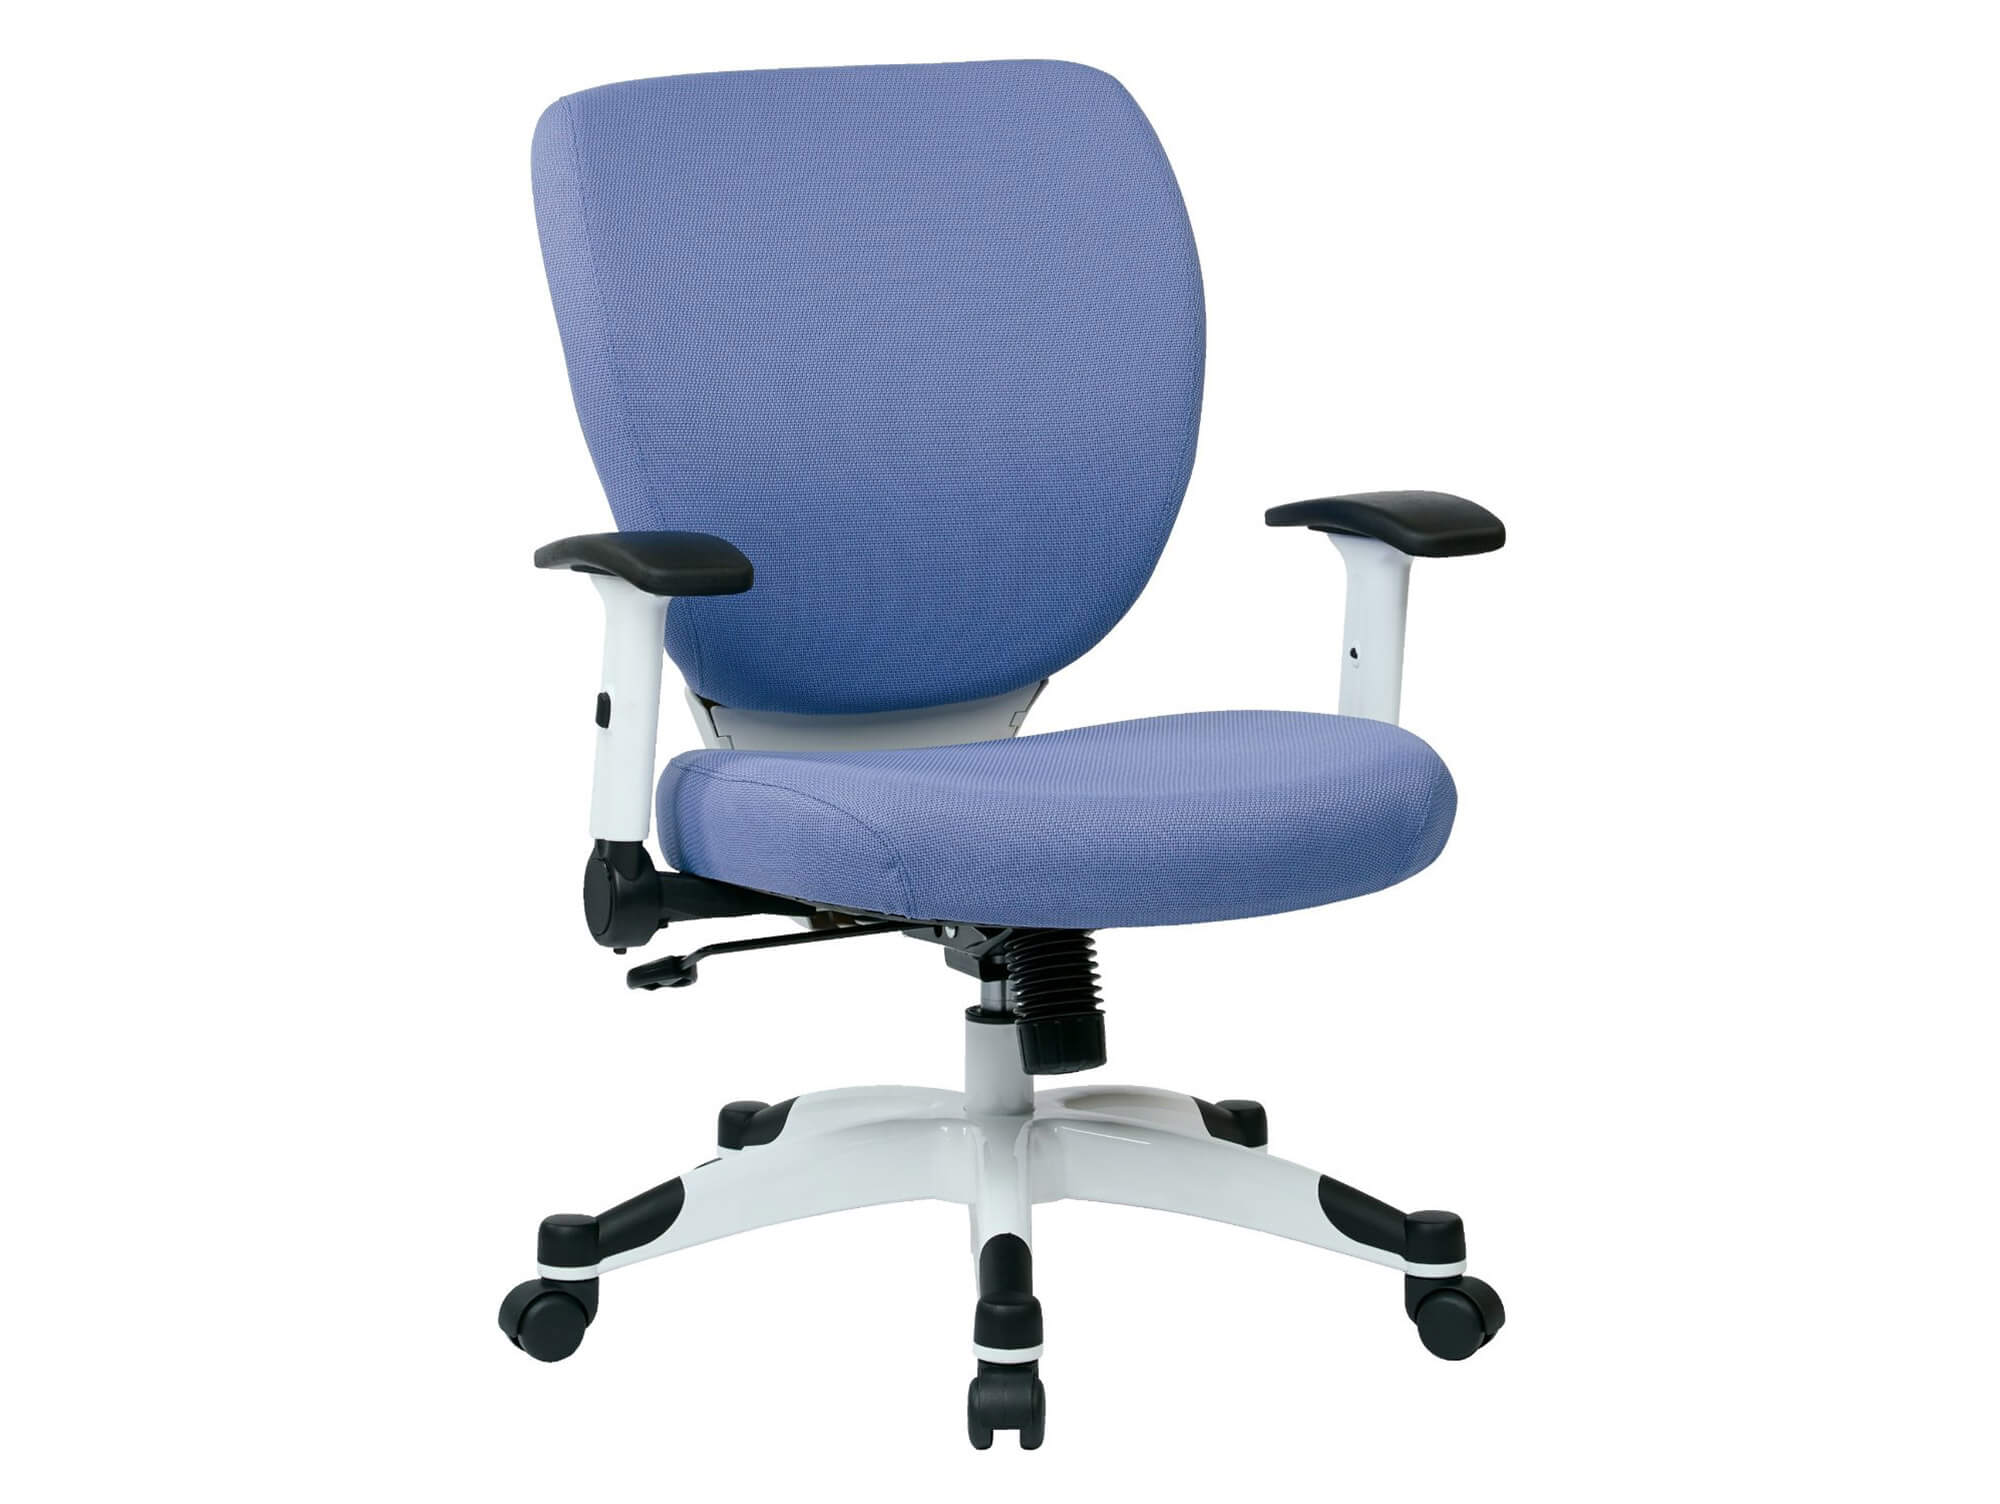 Office task chairs CUB 5200W 5877 PSO